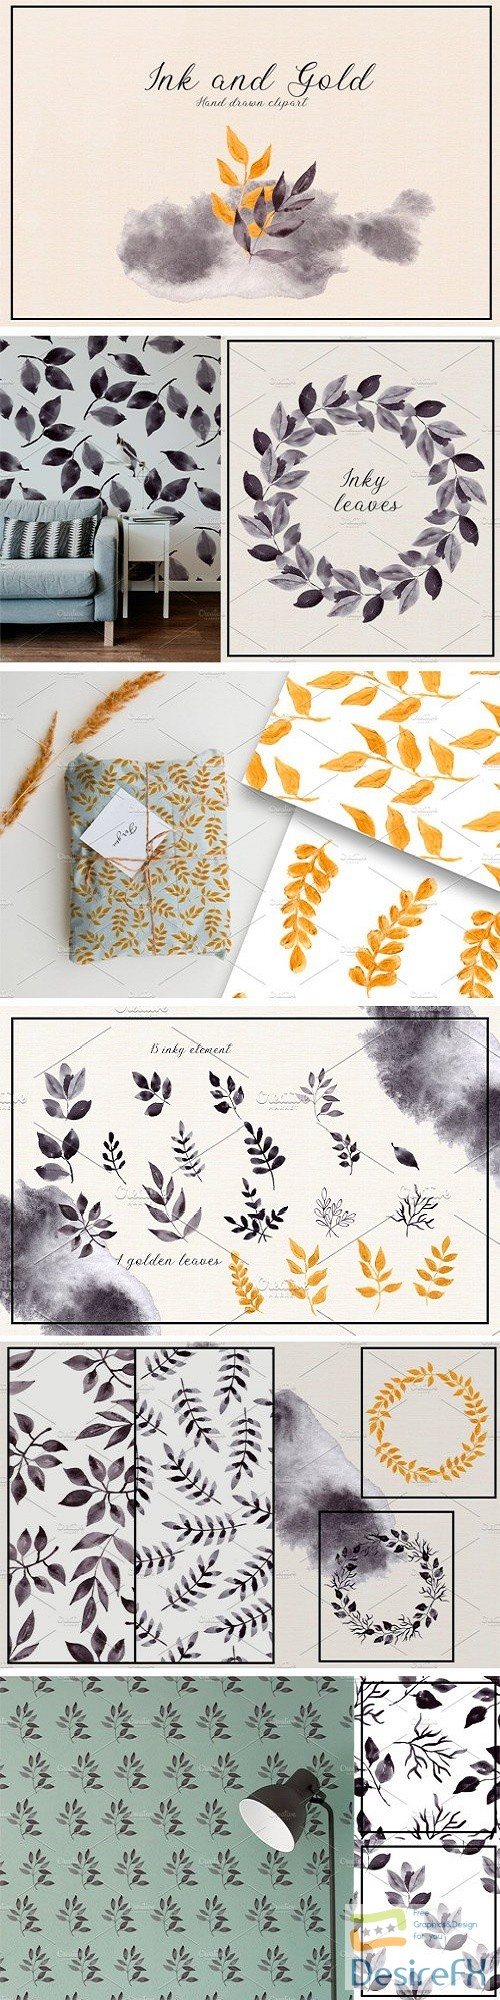 stock-images - Ink and Gold. Hand Drawn Clipart 2975792